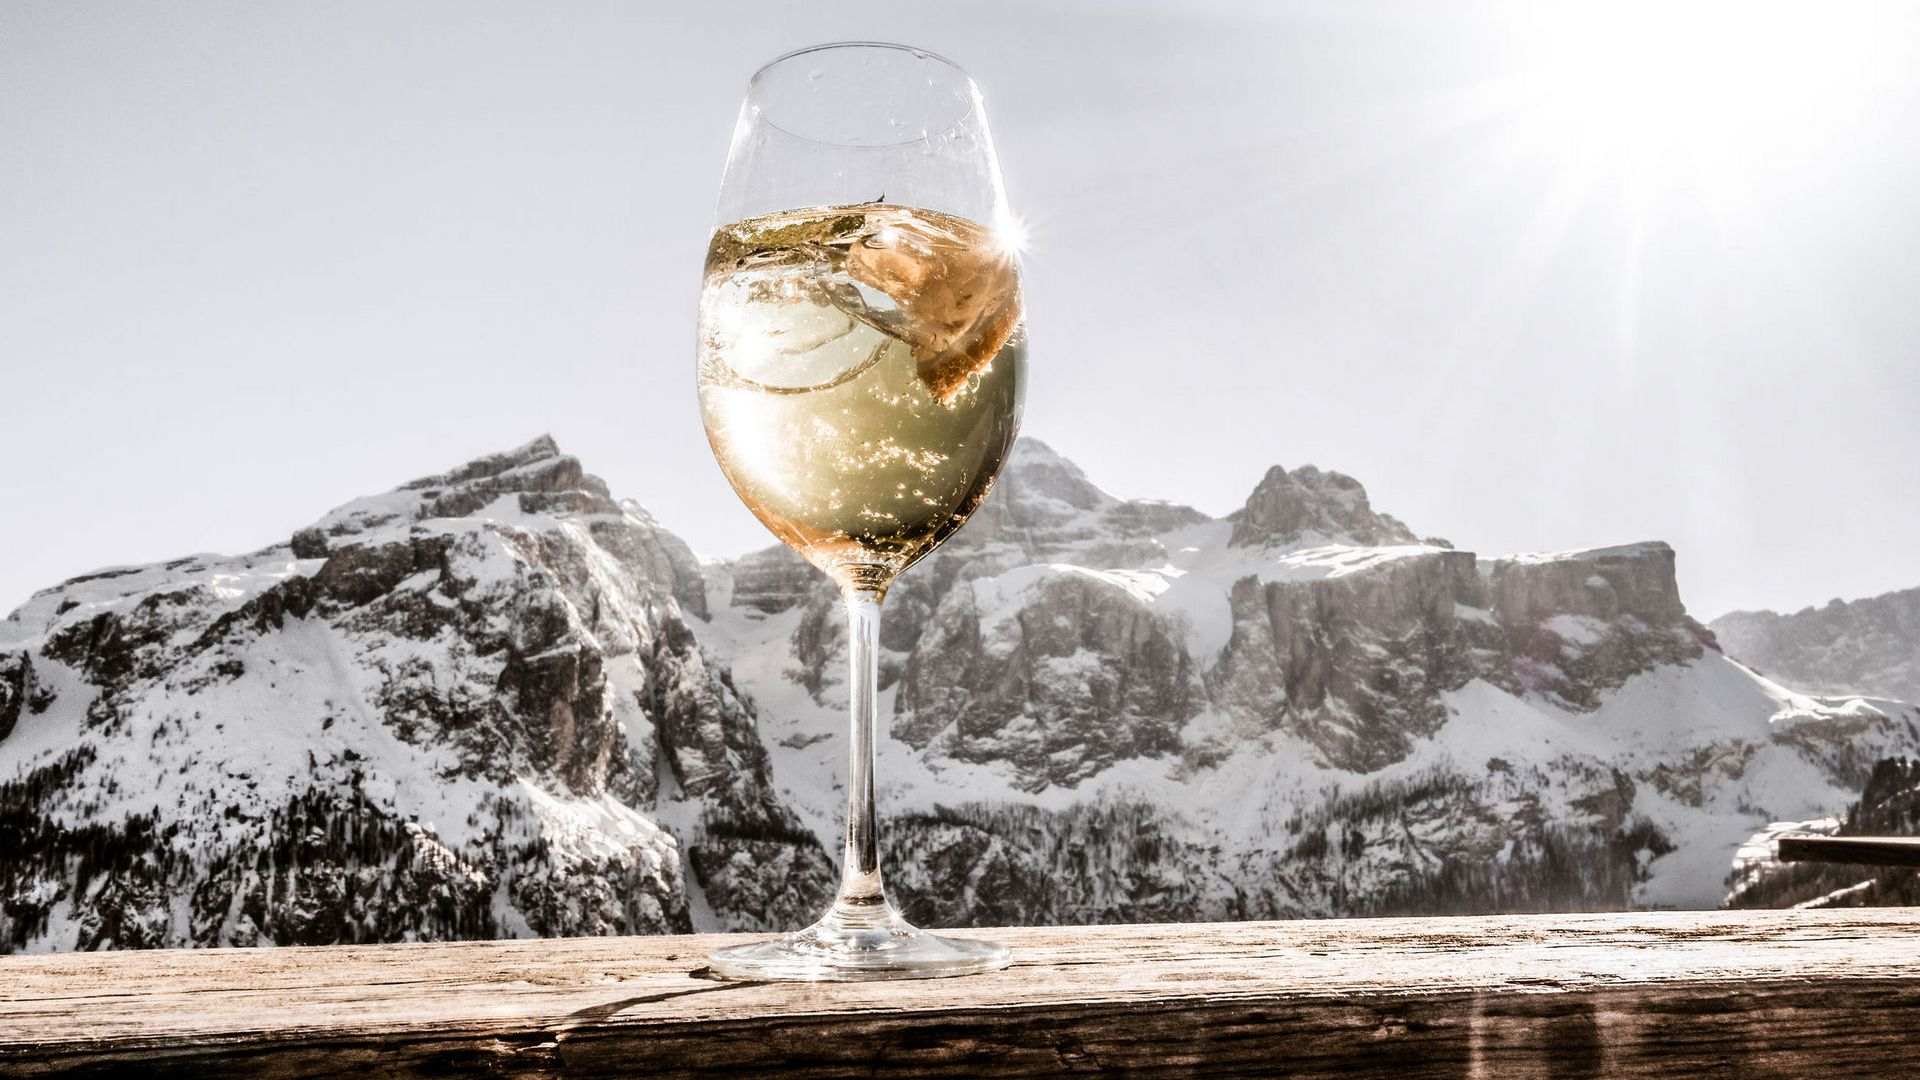 Image: Culinary treats San Cassiano